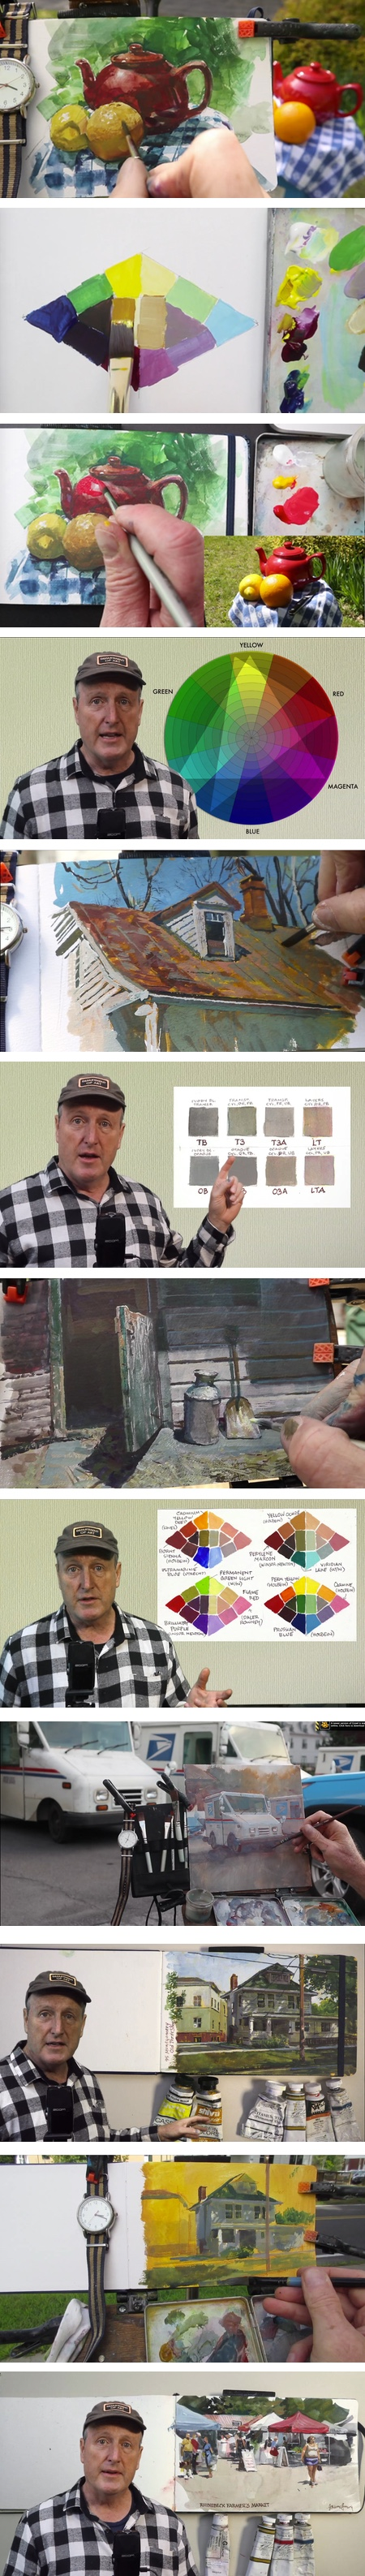 TRIADS: Painting with Three Colors, art instruction video by James Gurney